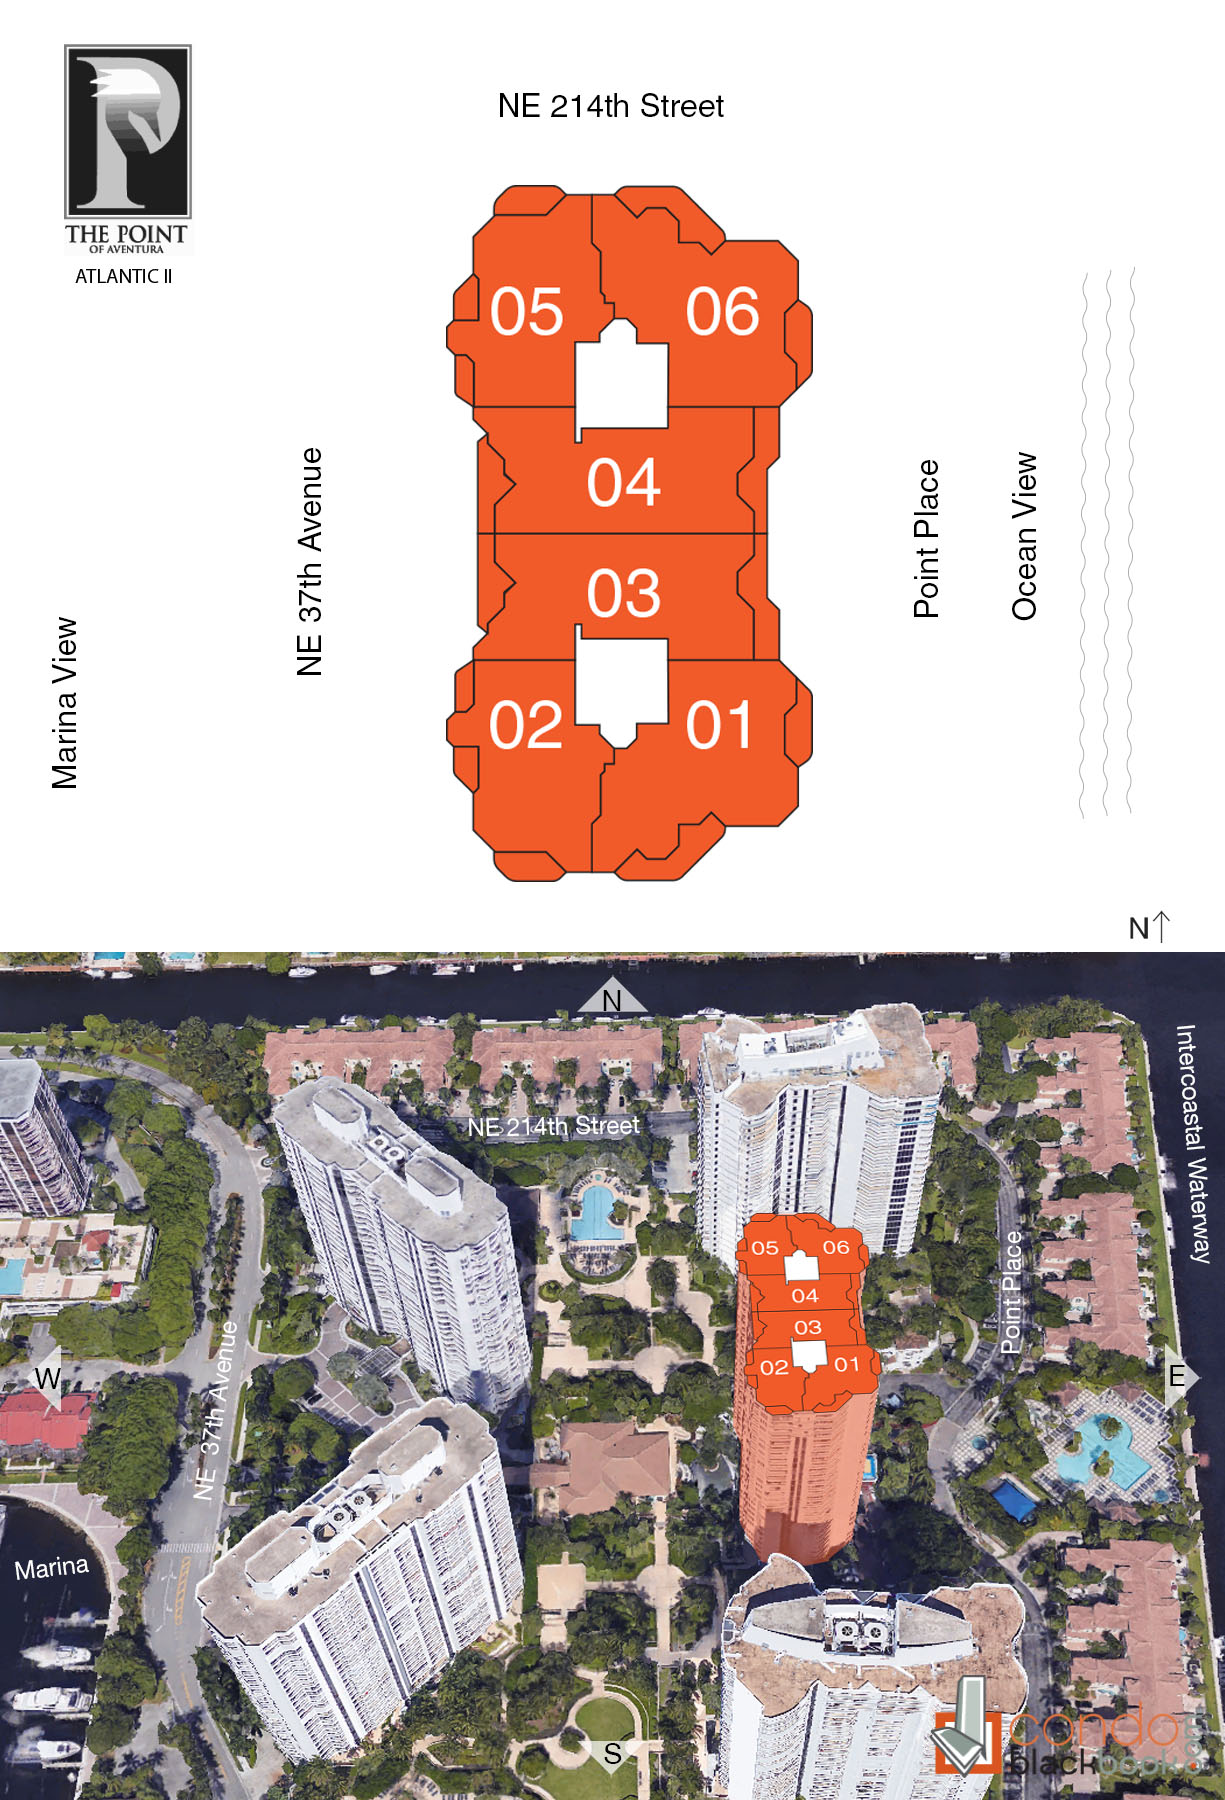 Atlantic II at the Point floorplan and site plan